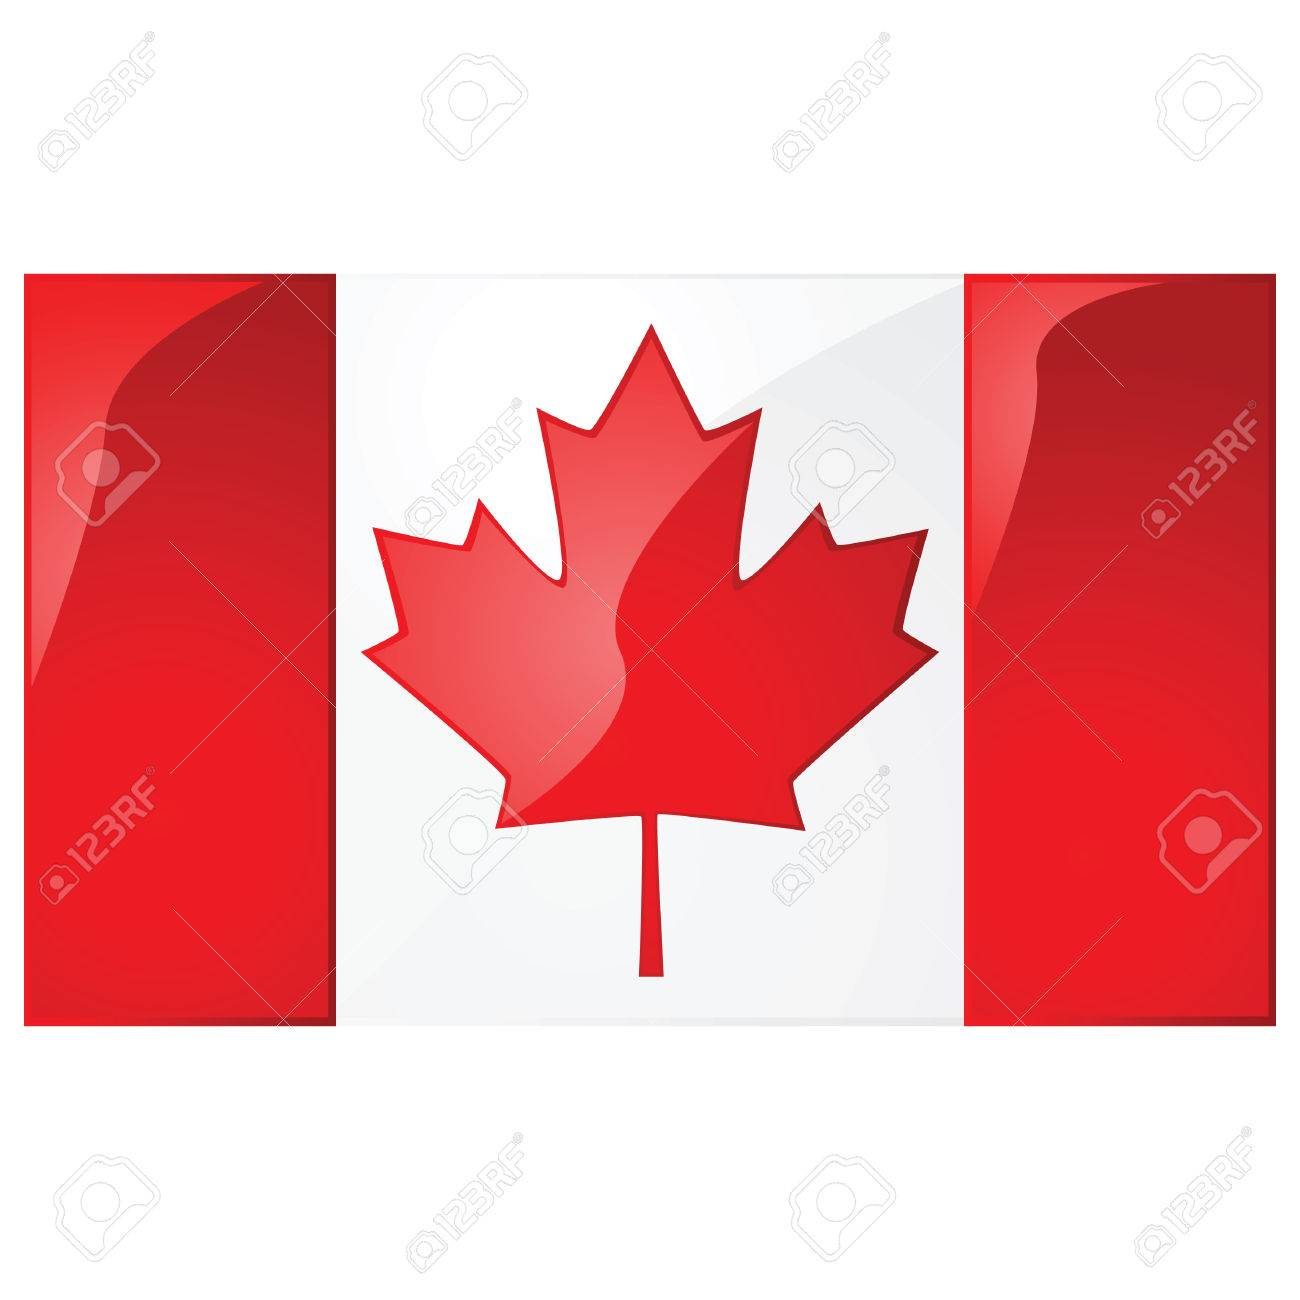 Glossy illustration of the flag of Canada Stock Vector - 7697366